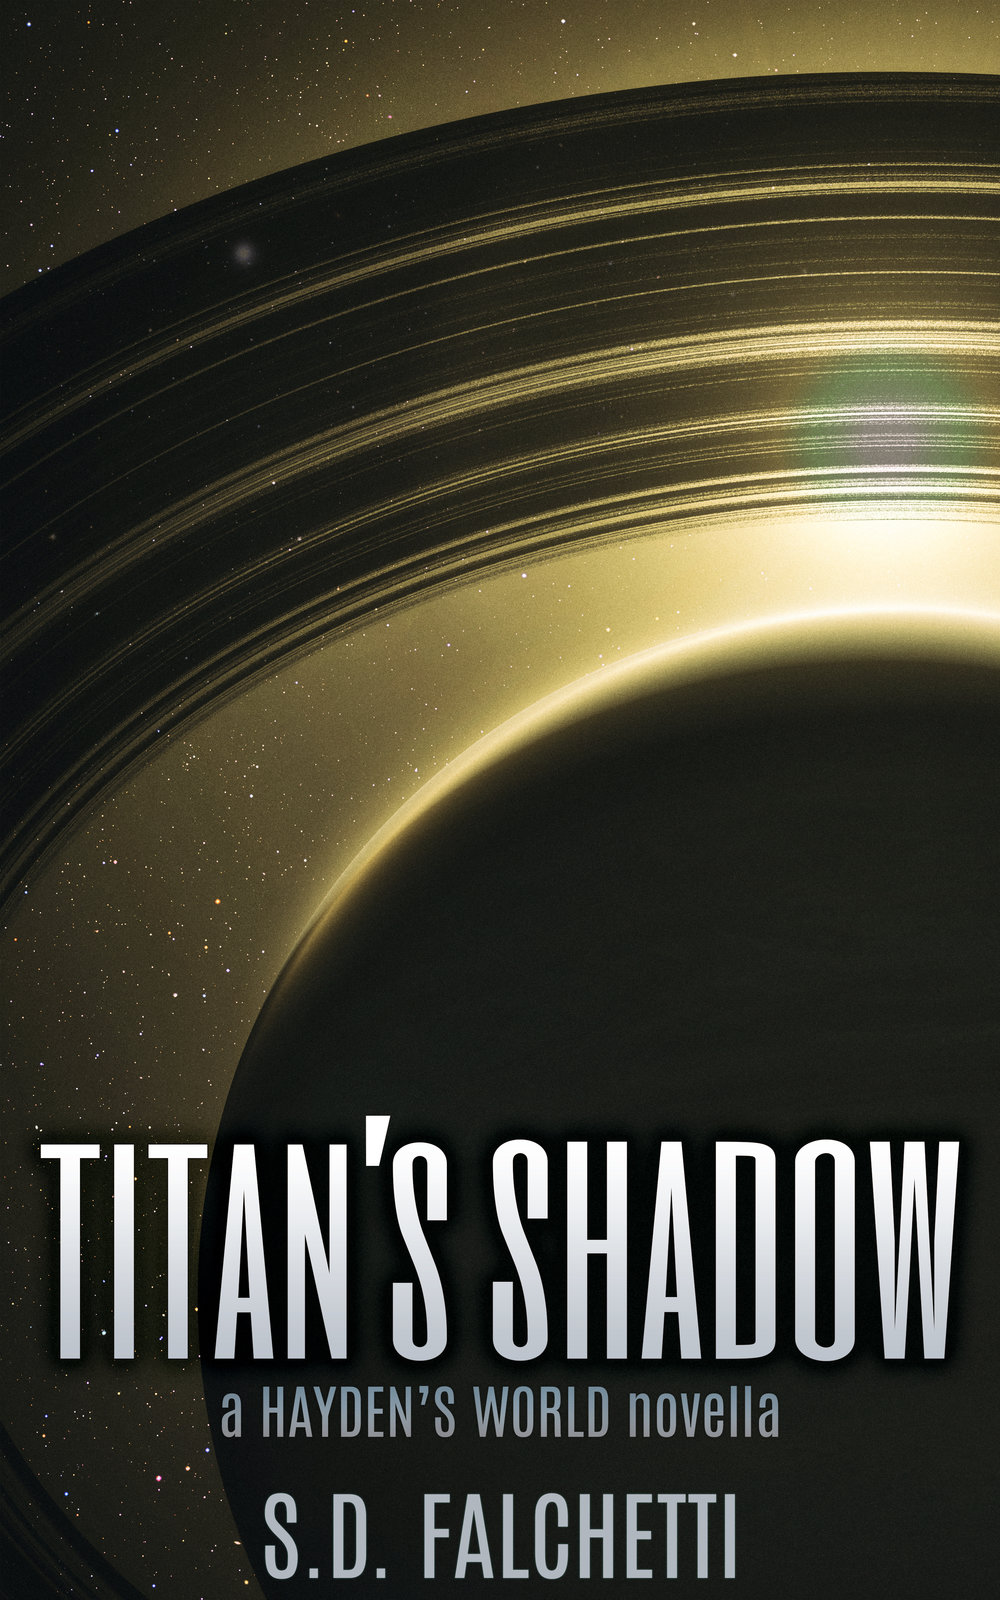 Titans Shadow.jpg